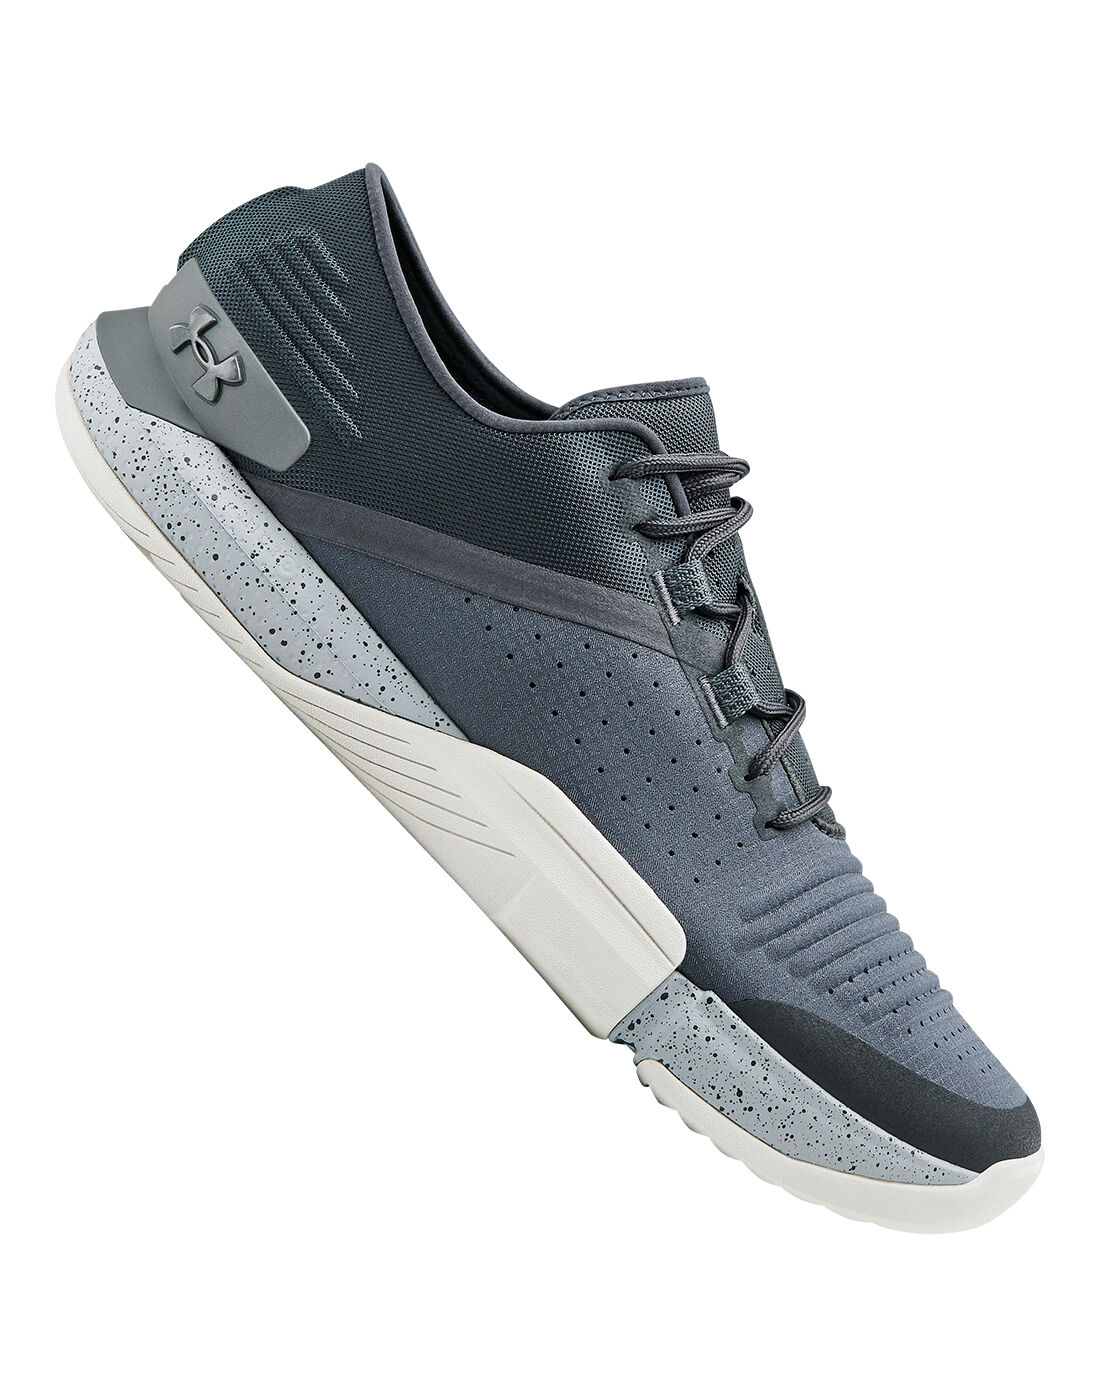 Under Armour Mens TriBase Reign - Grey